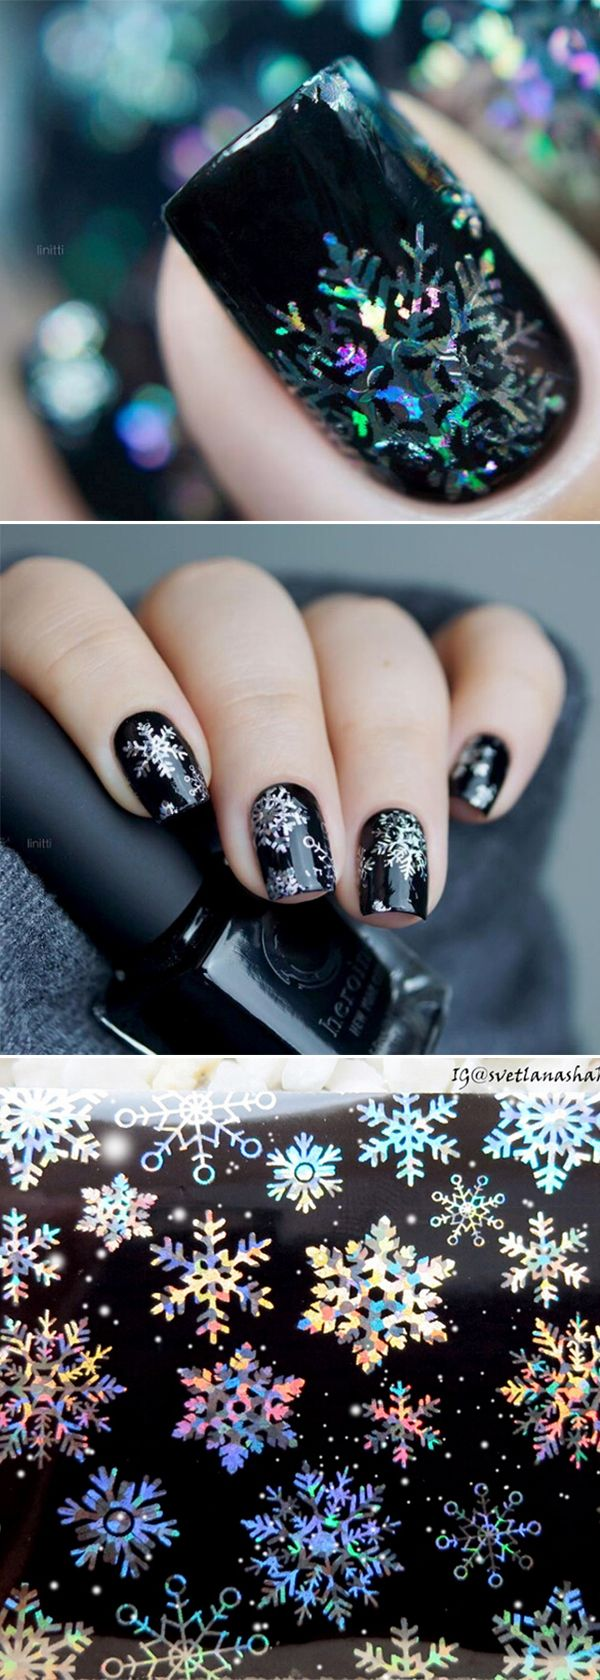 #Christmas snowflake #nailart, try this one if you are still thinking about how to do you Christmas manicures. see more in bornprettystore.com